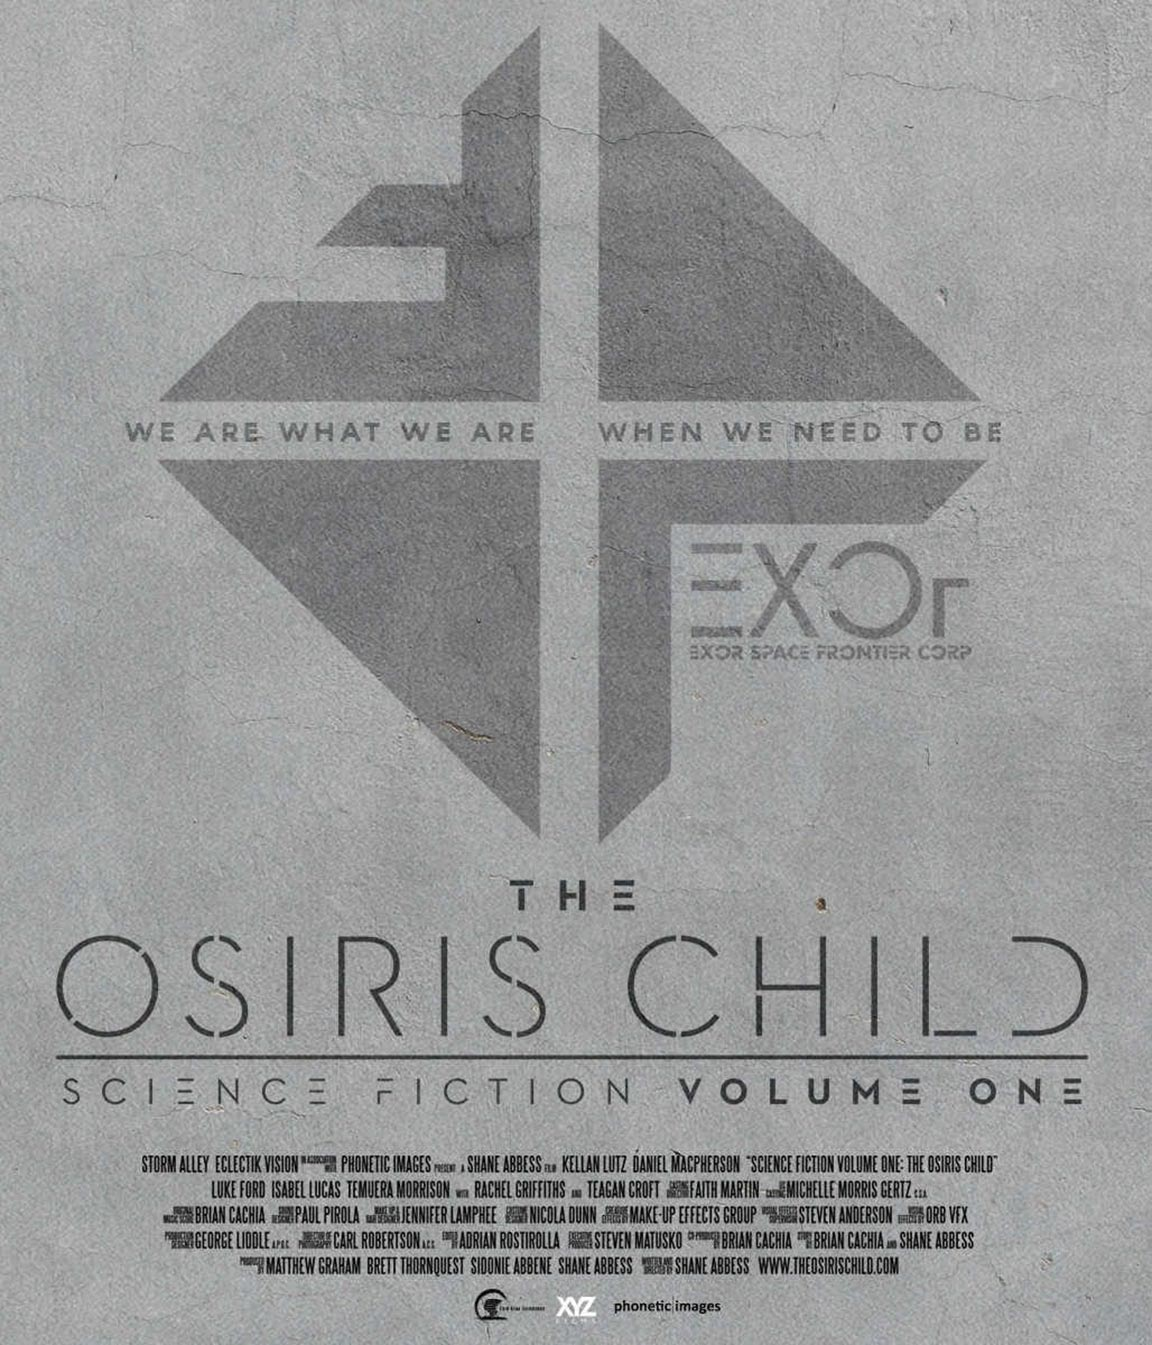 The Osiris Child: Science Fiction Volume One Poster #1